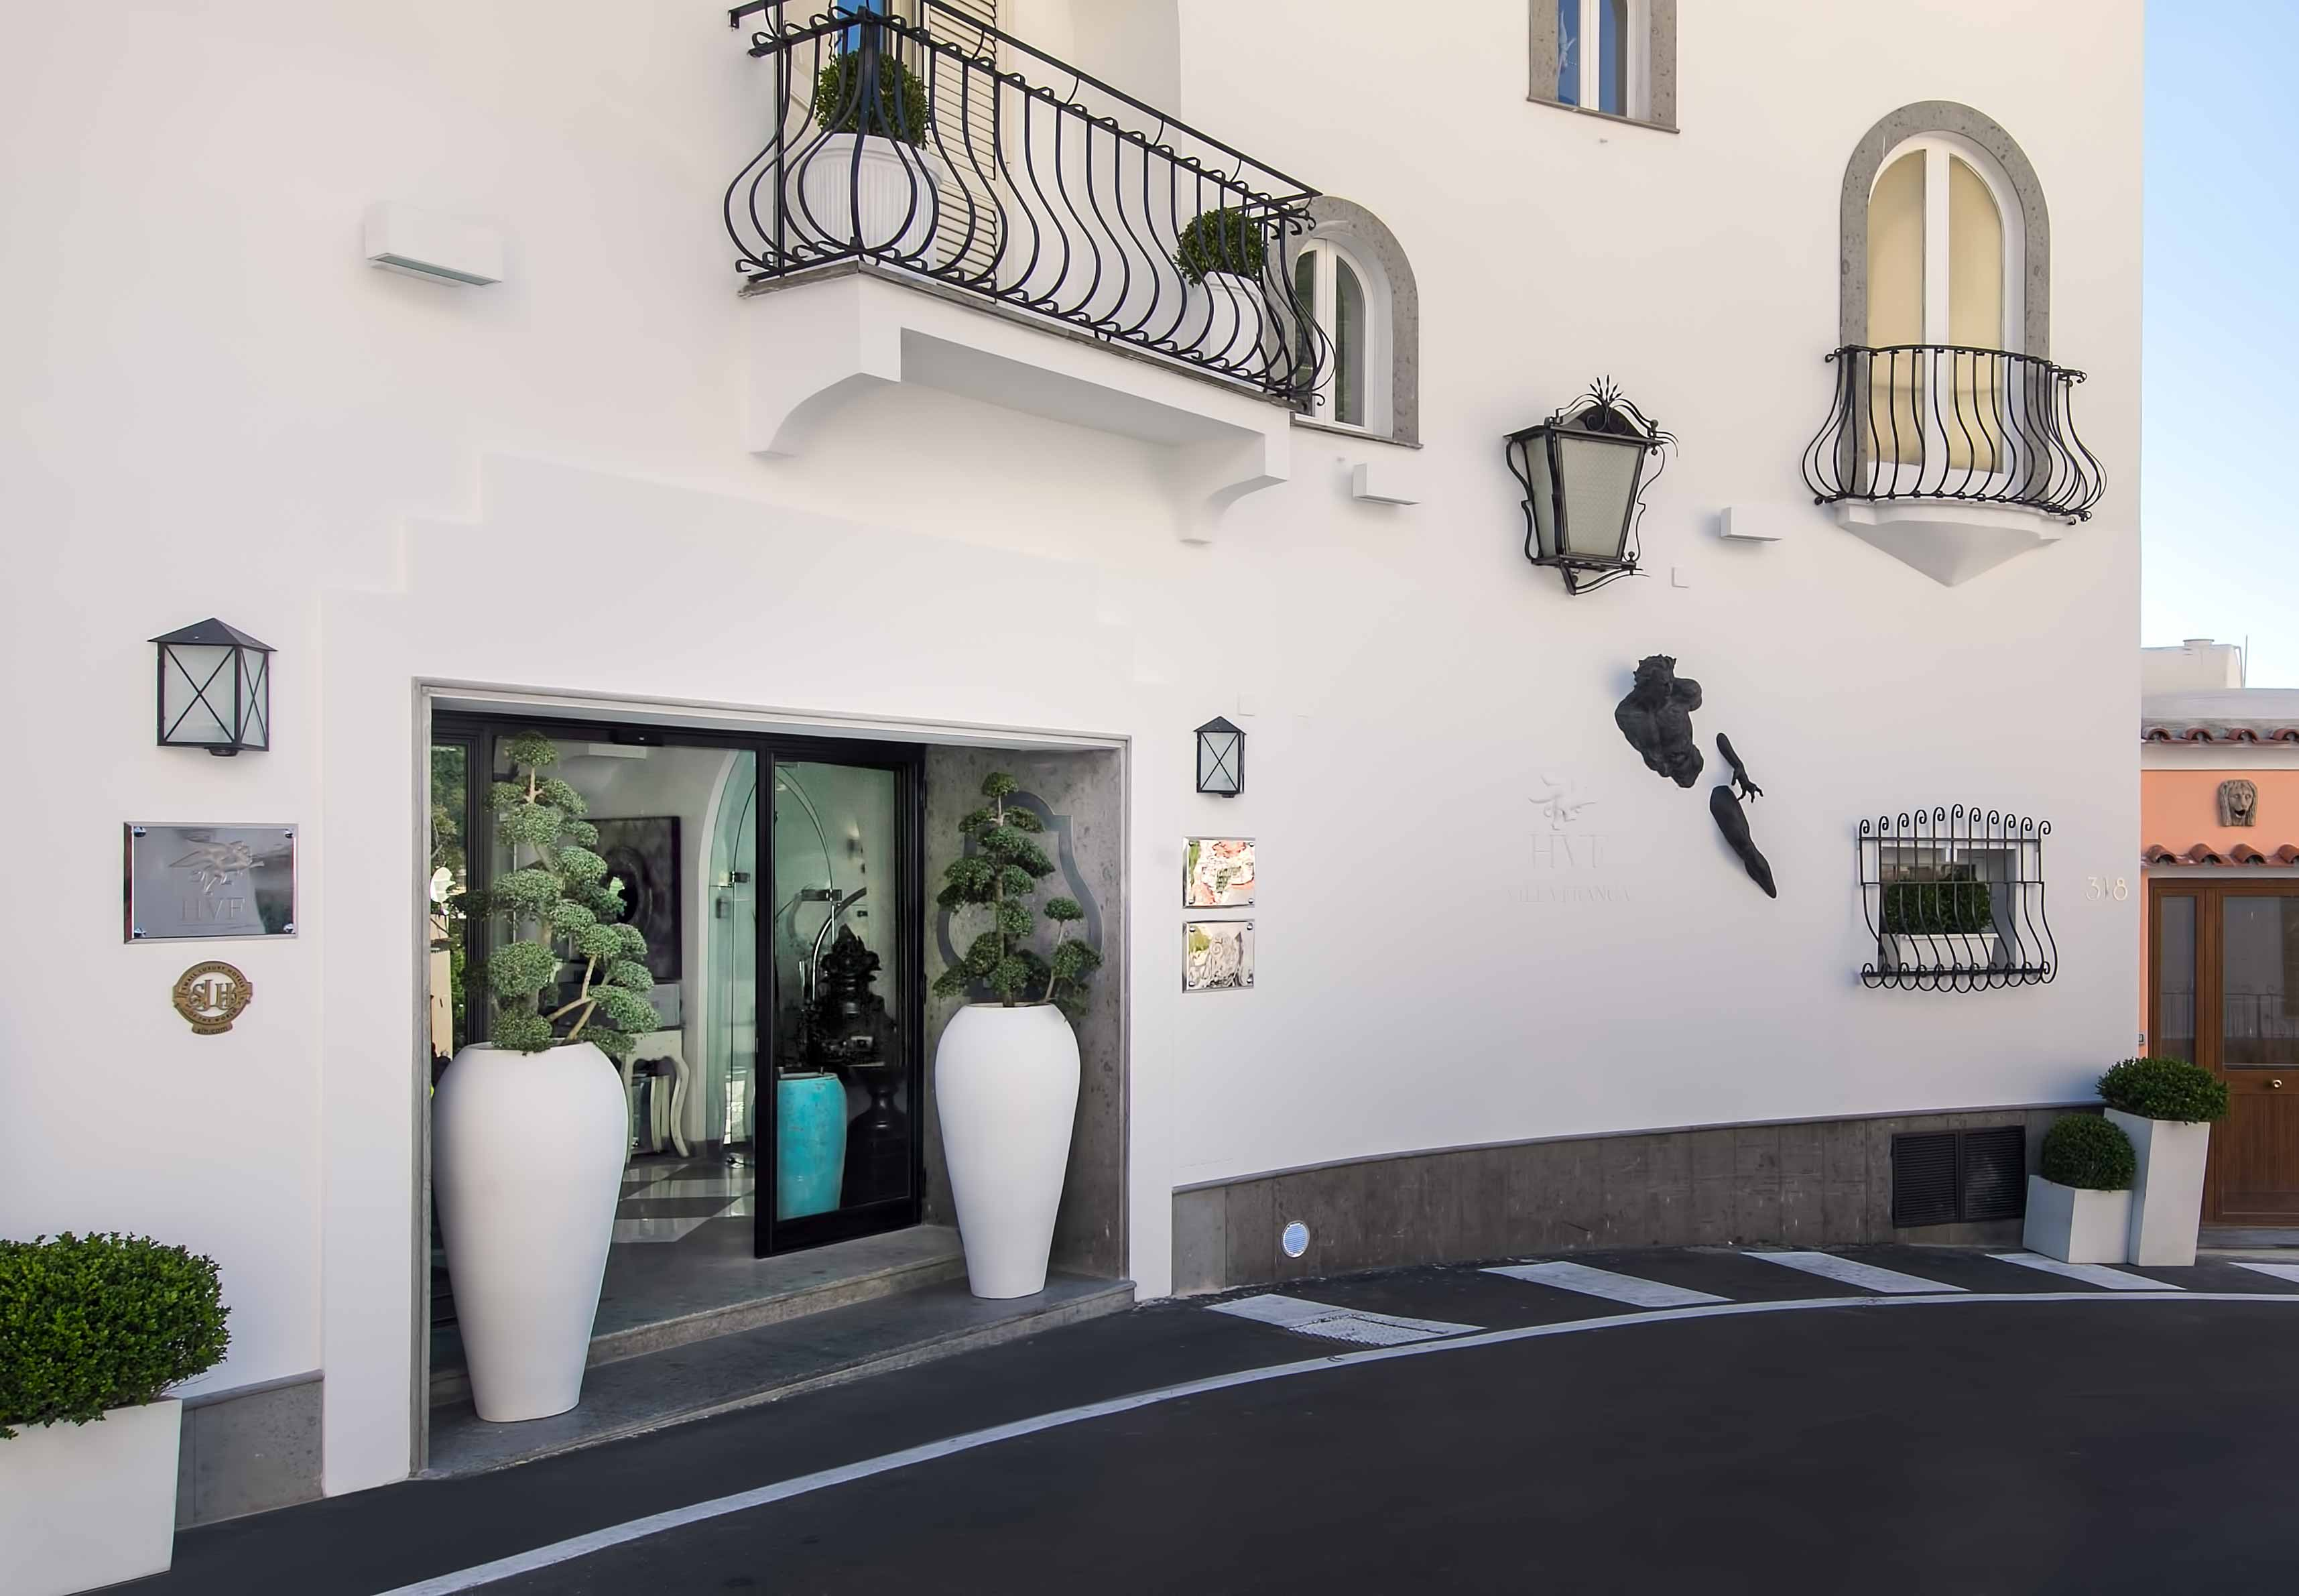 Entrance at the Hotel Villa Franca